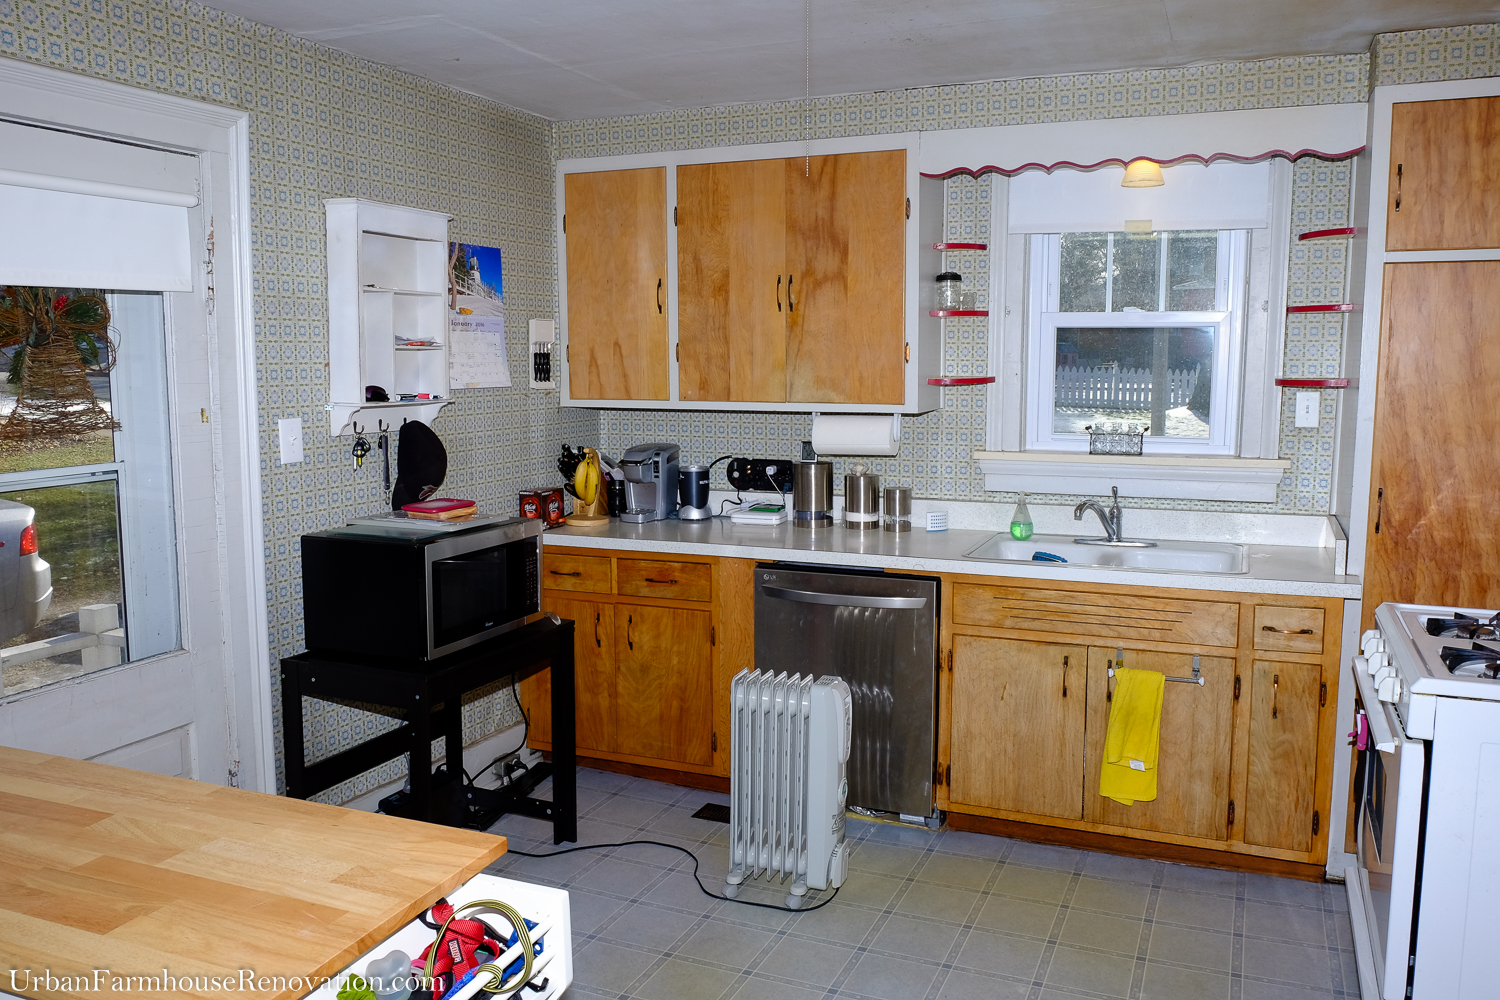 Disfunctional outdated kitchen. Depsite new windows, a portable heater is needed to keep the kitchen warm during winter.